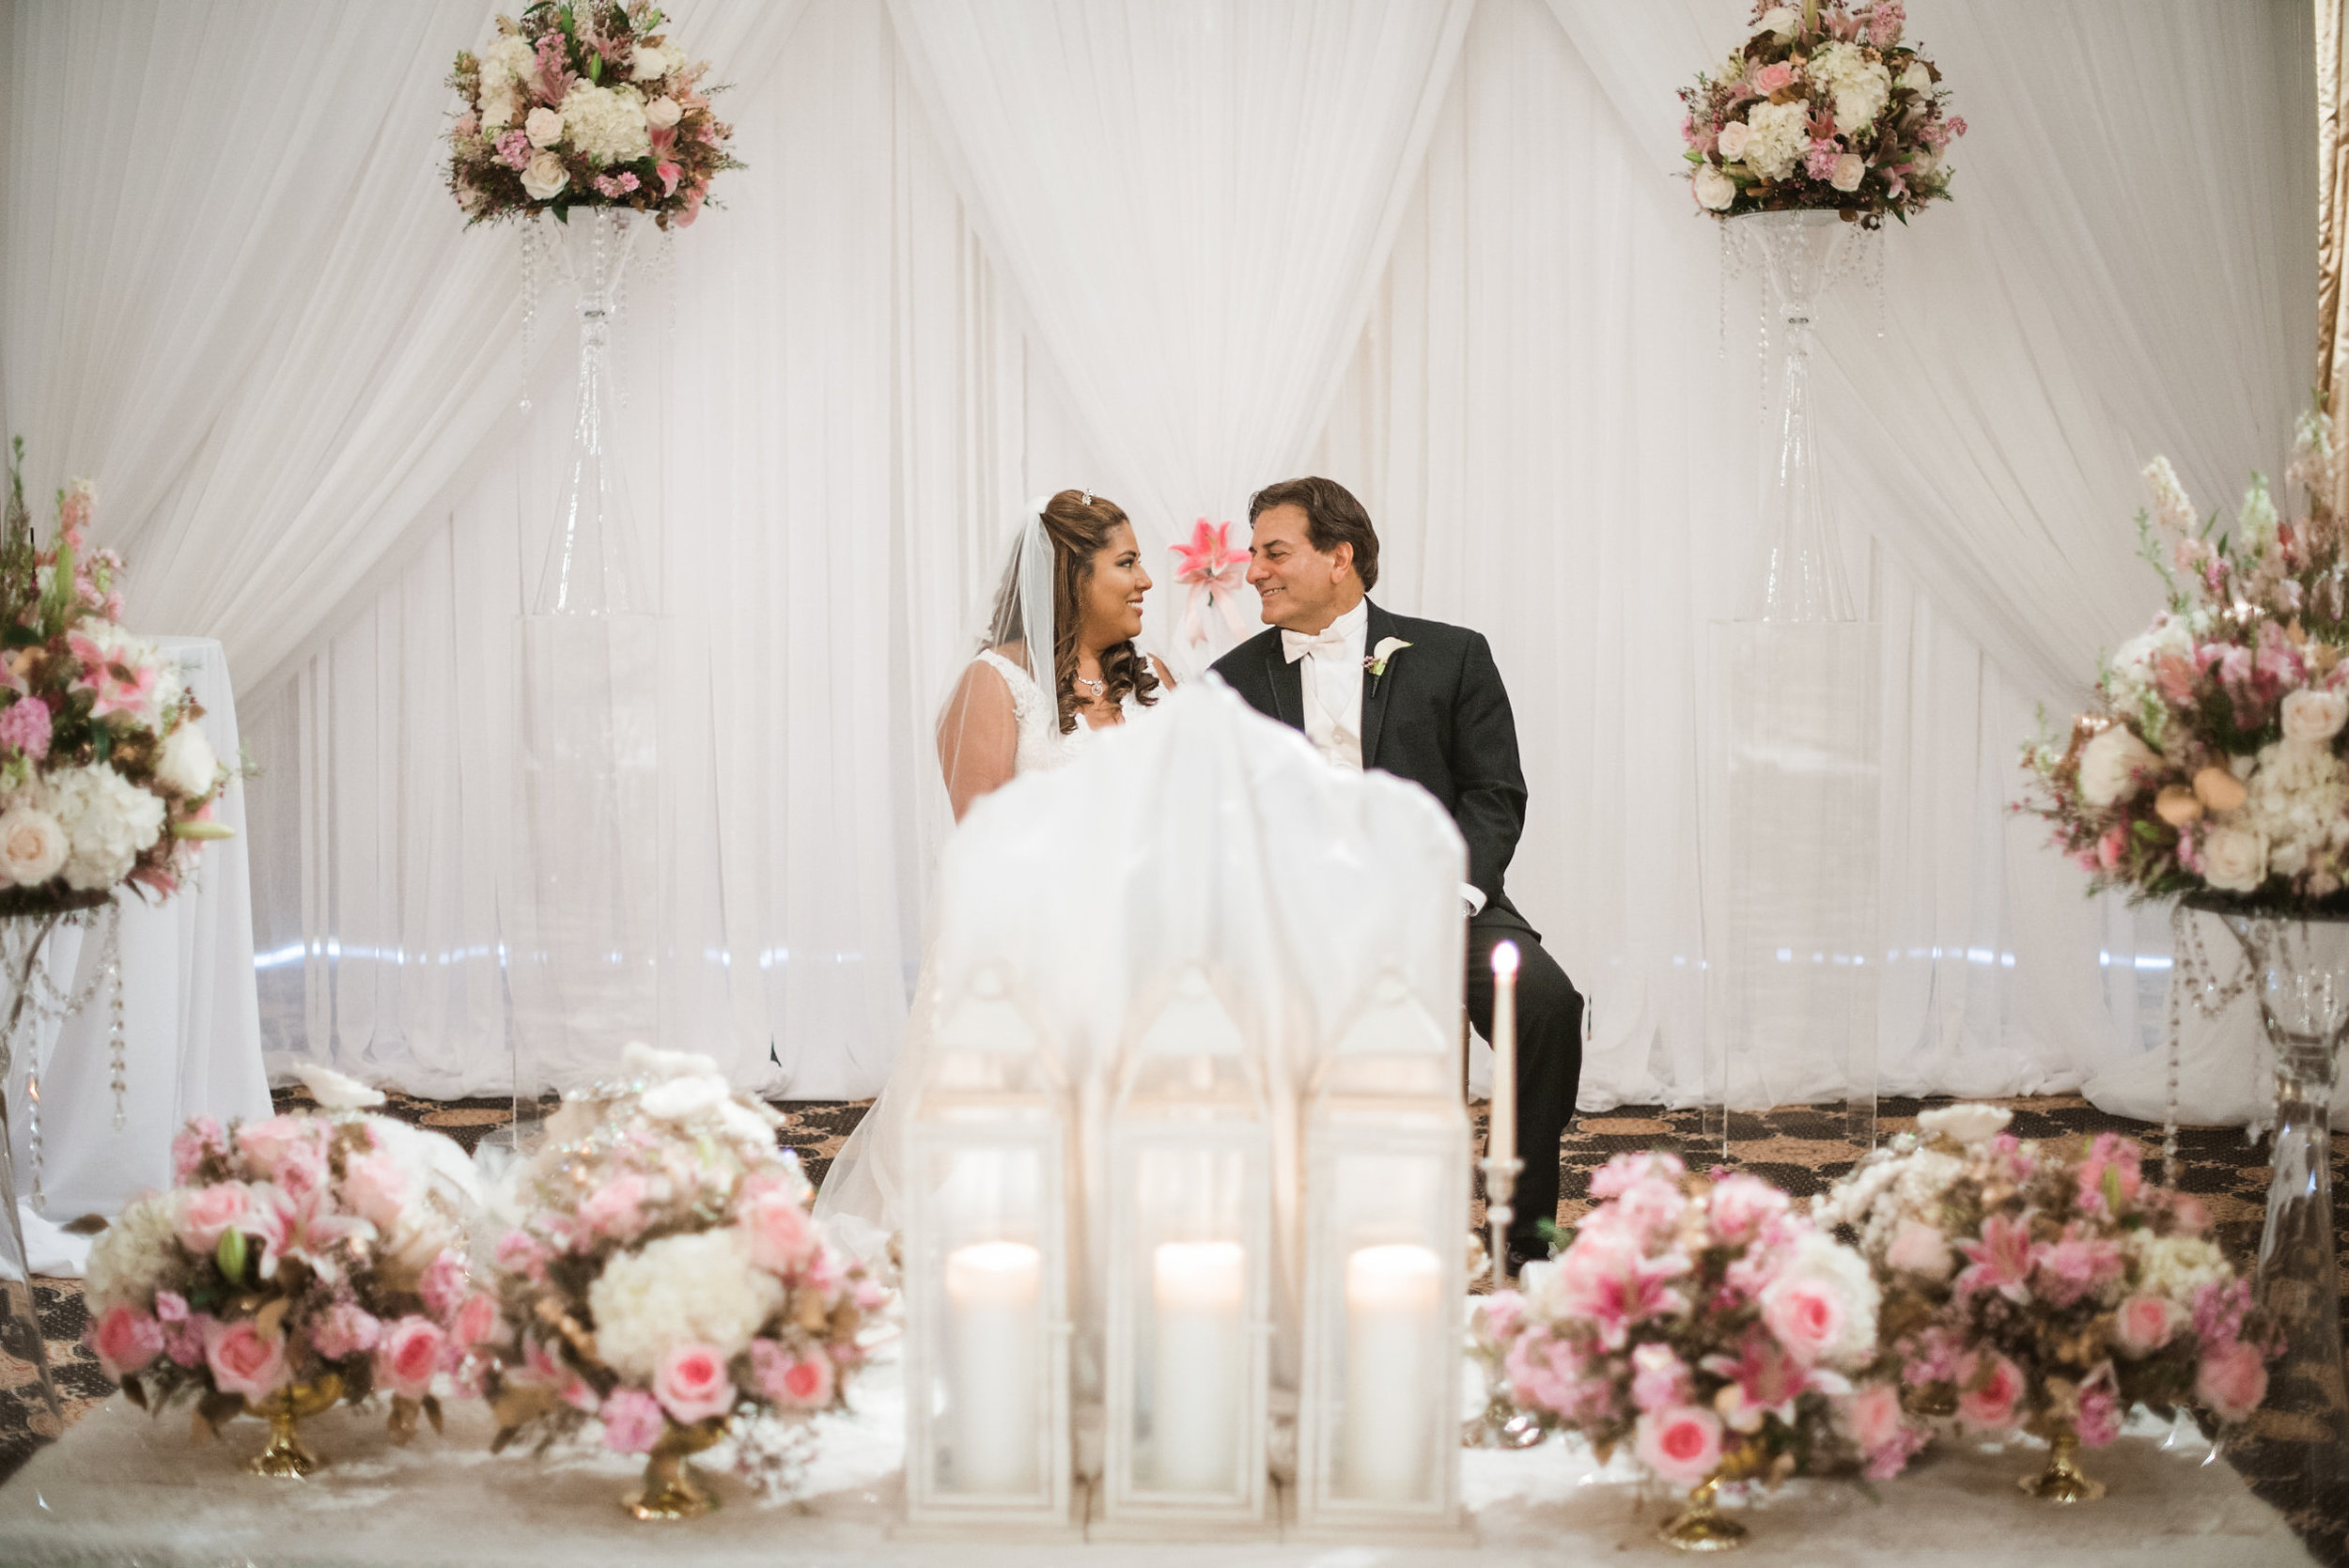 Bride and groom sitting at altar